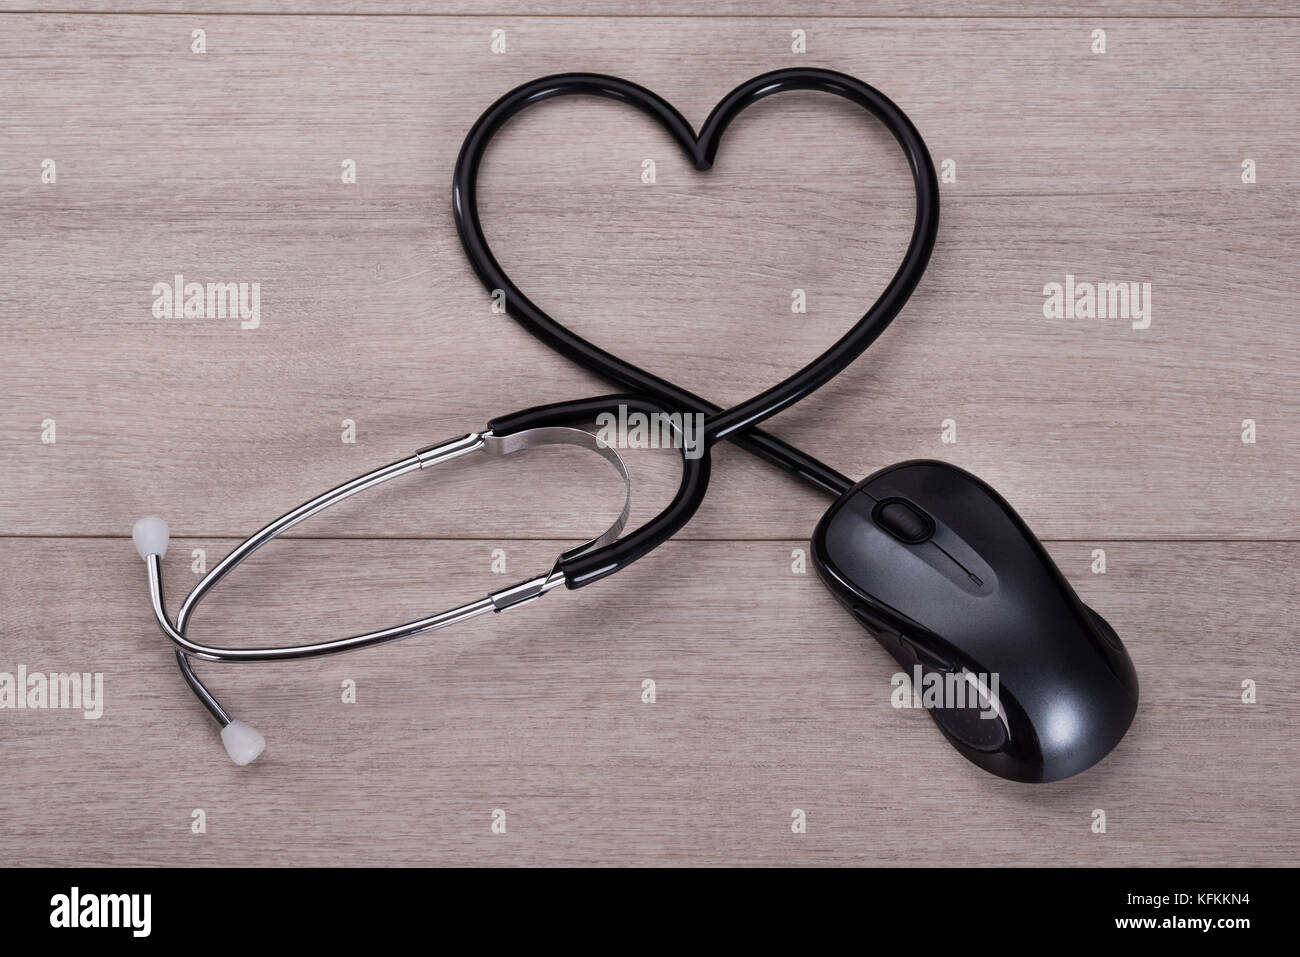 Stethoscope Forming Heart Shape In Online Medical Advice Concept